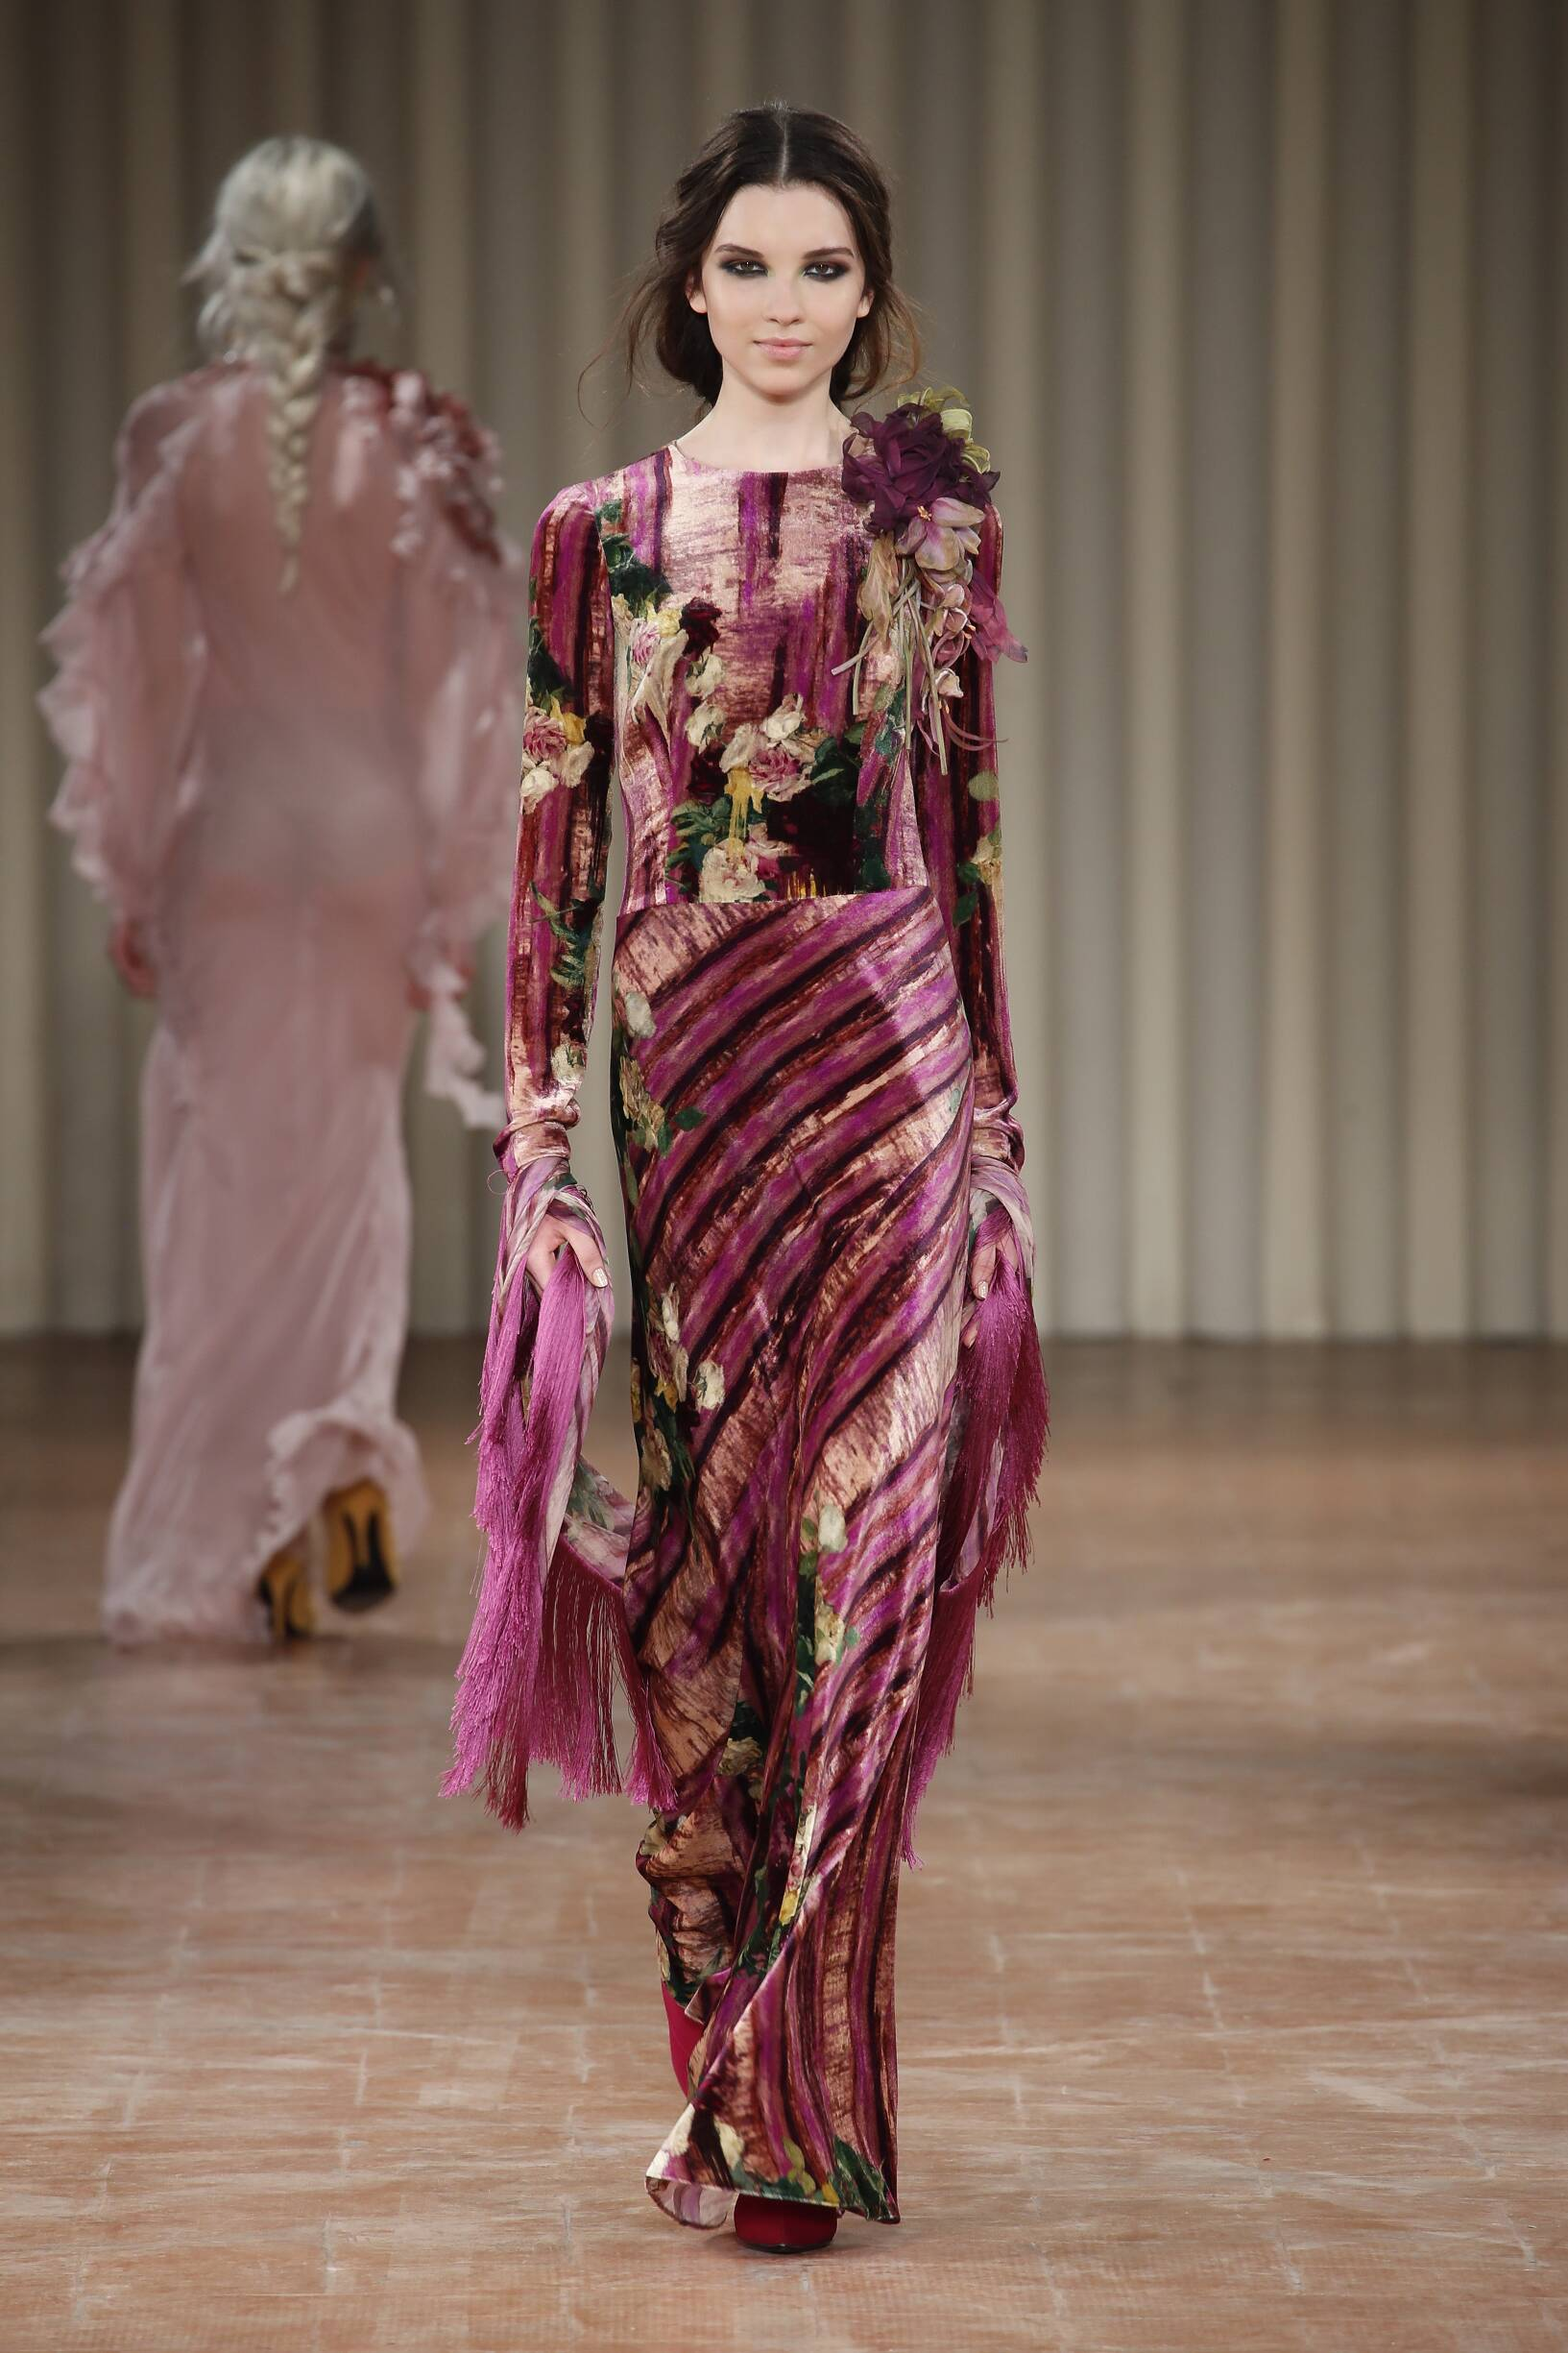 ALBERTA FERRETTI FALL WINTER 2017-18 WOMEN'S COLLECTION ...